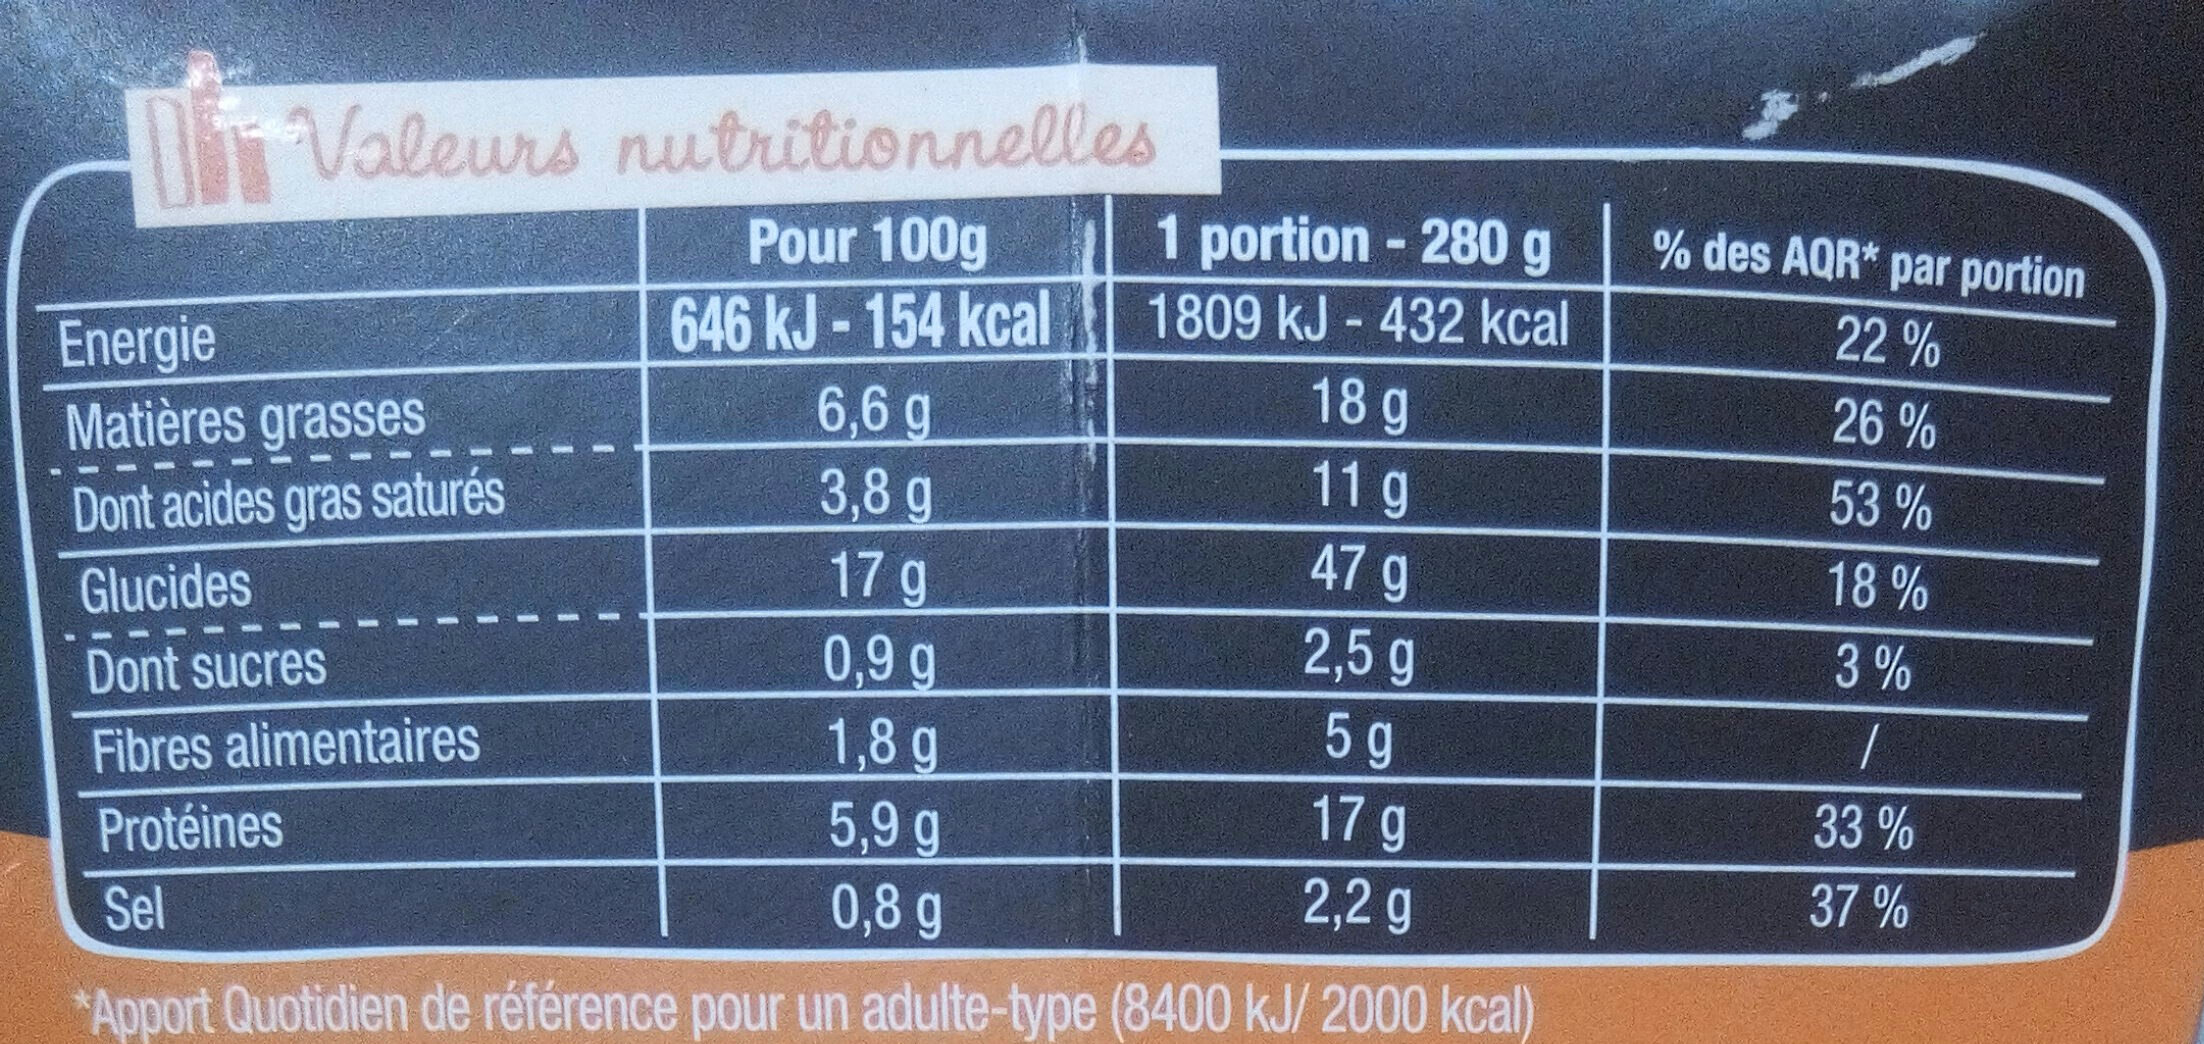 PastaBox - Fusilli au Saumon et Pointe de citron - Nutrition facts